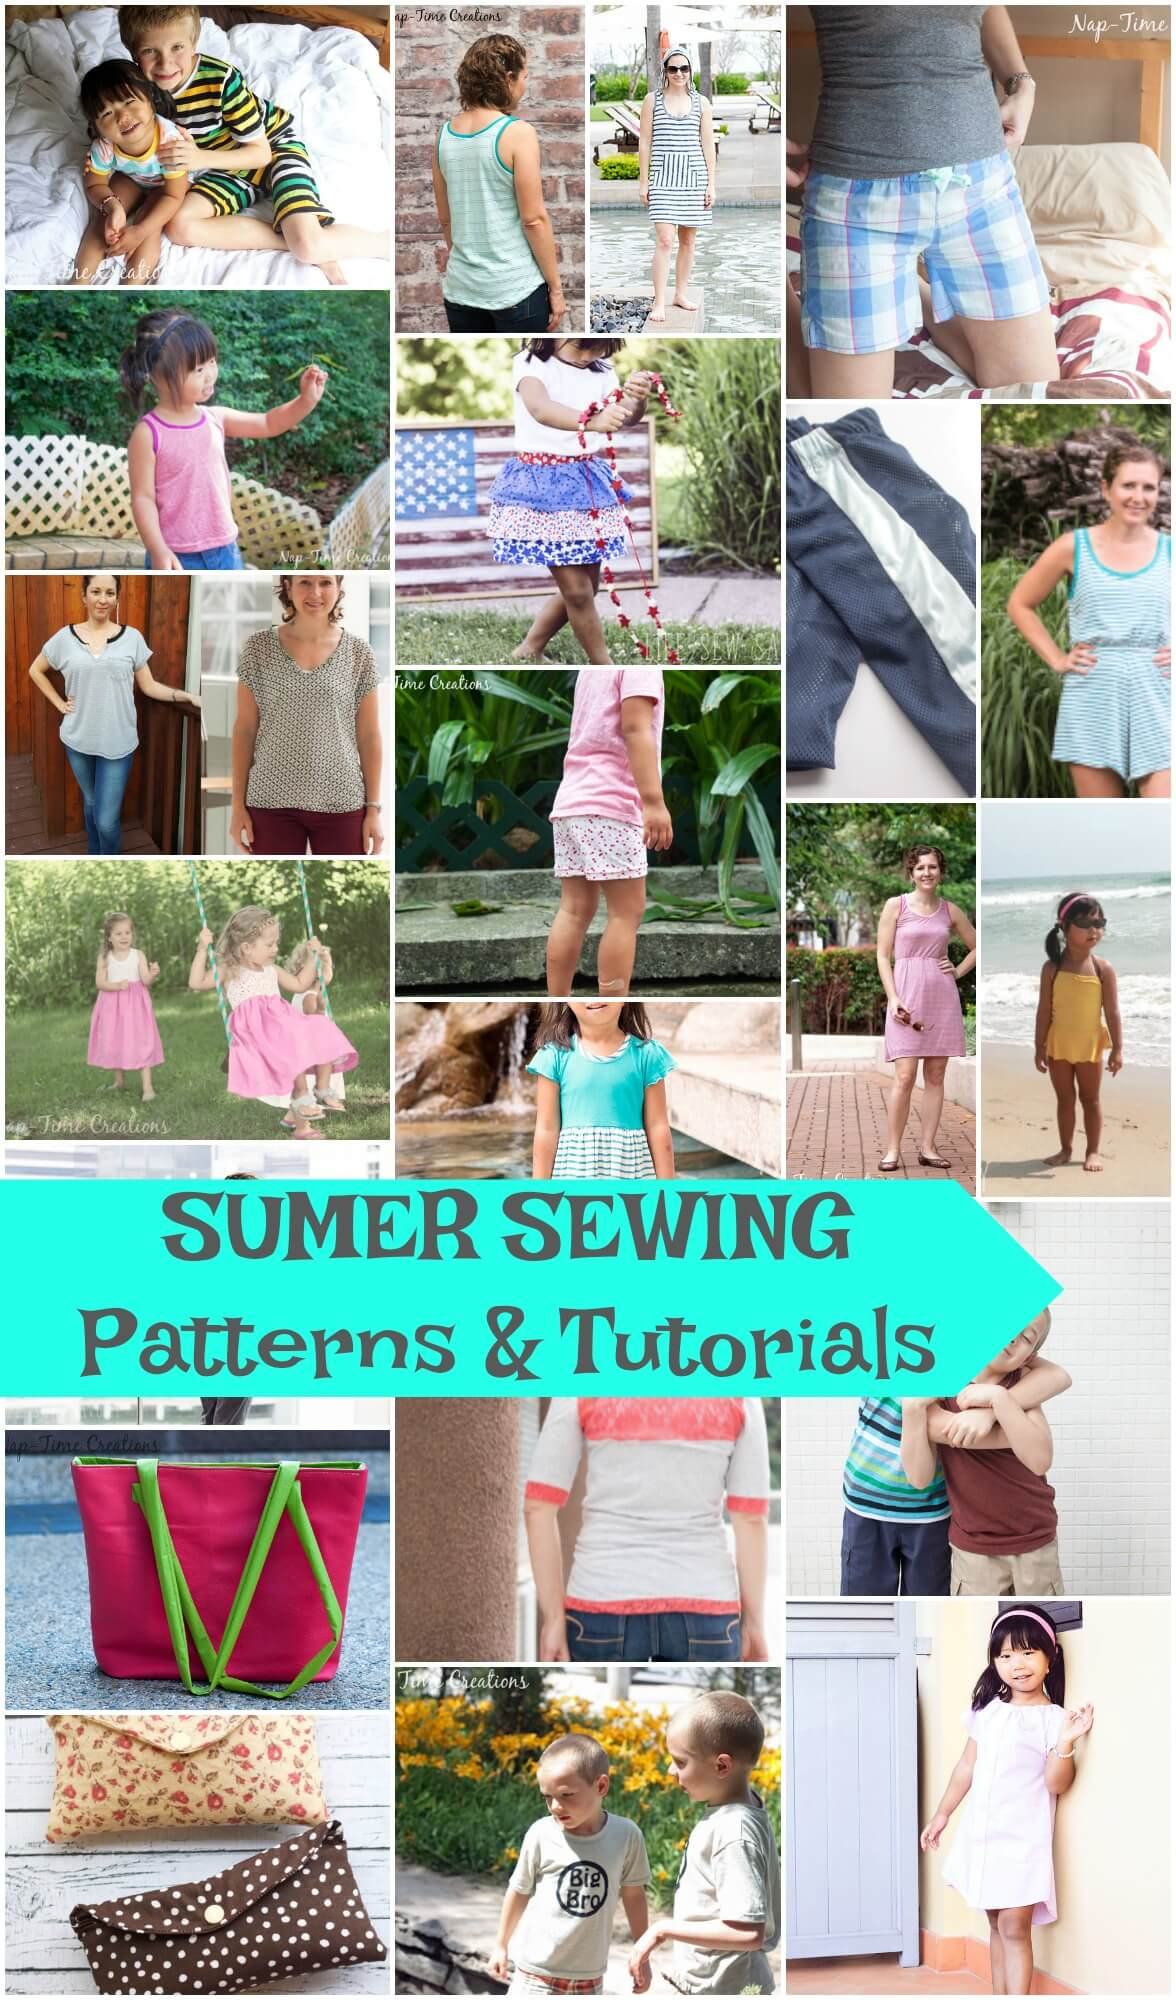 summer sewing projects, tutorials and patterns from LIfe Sew Savory